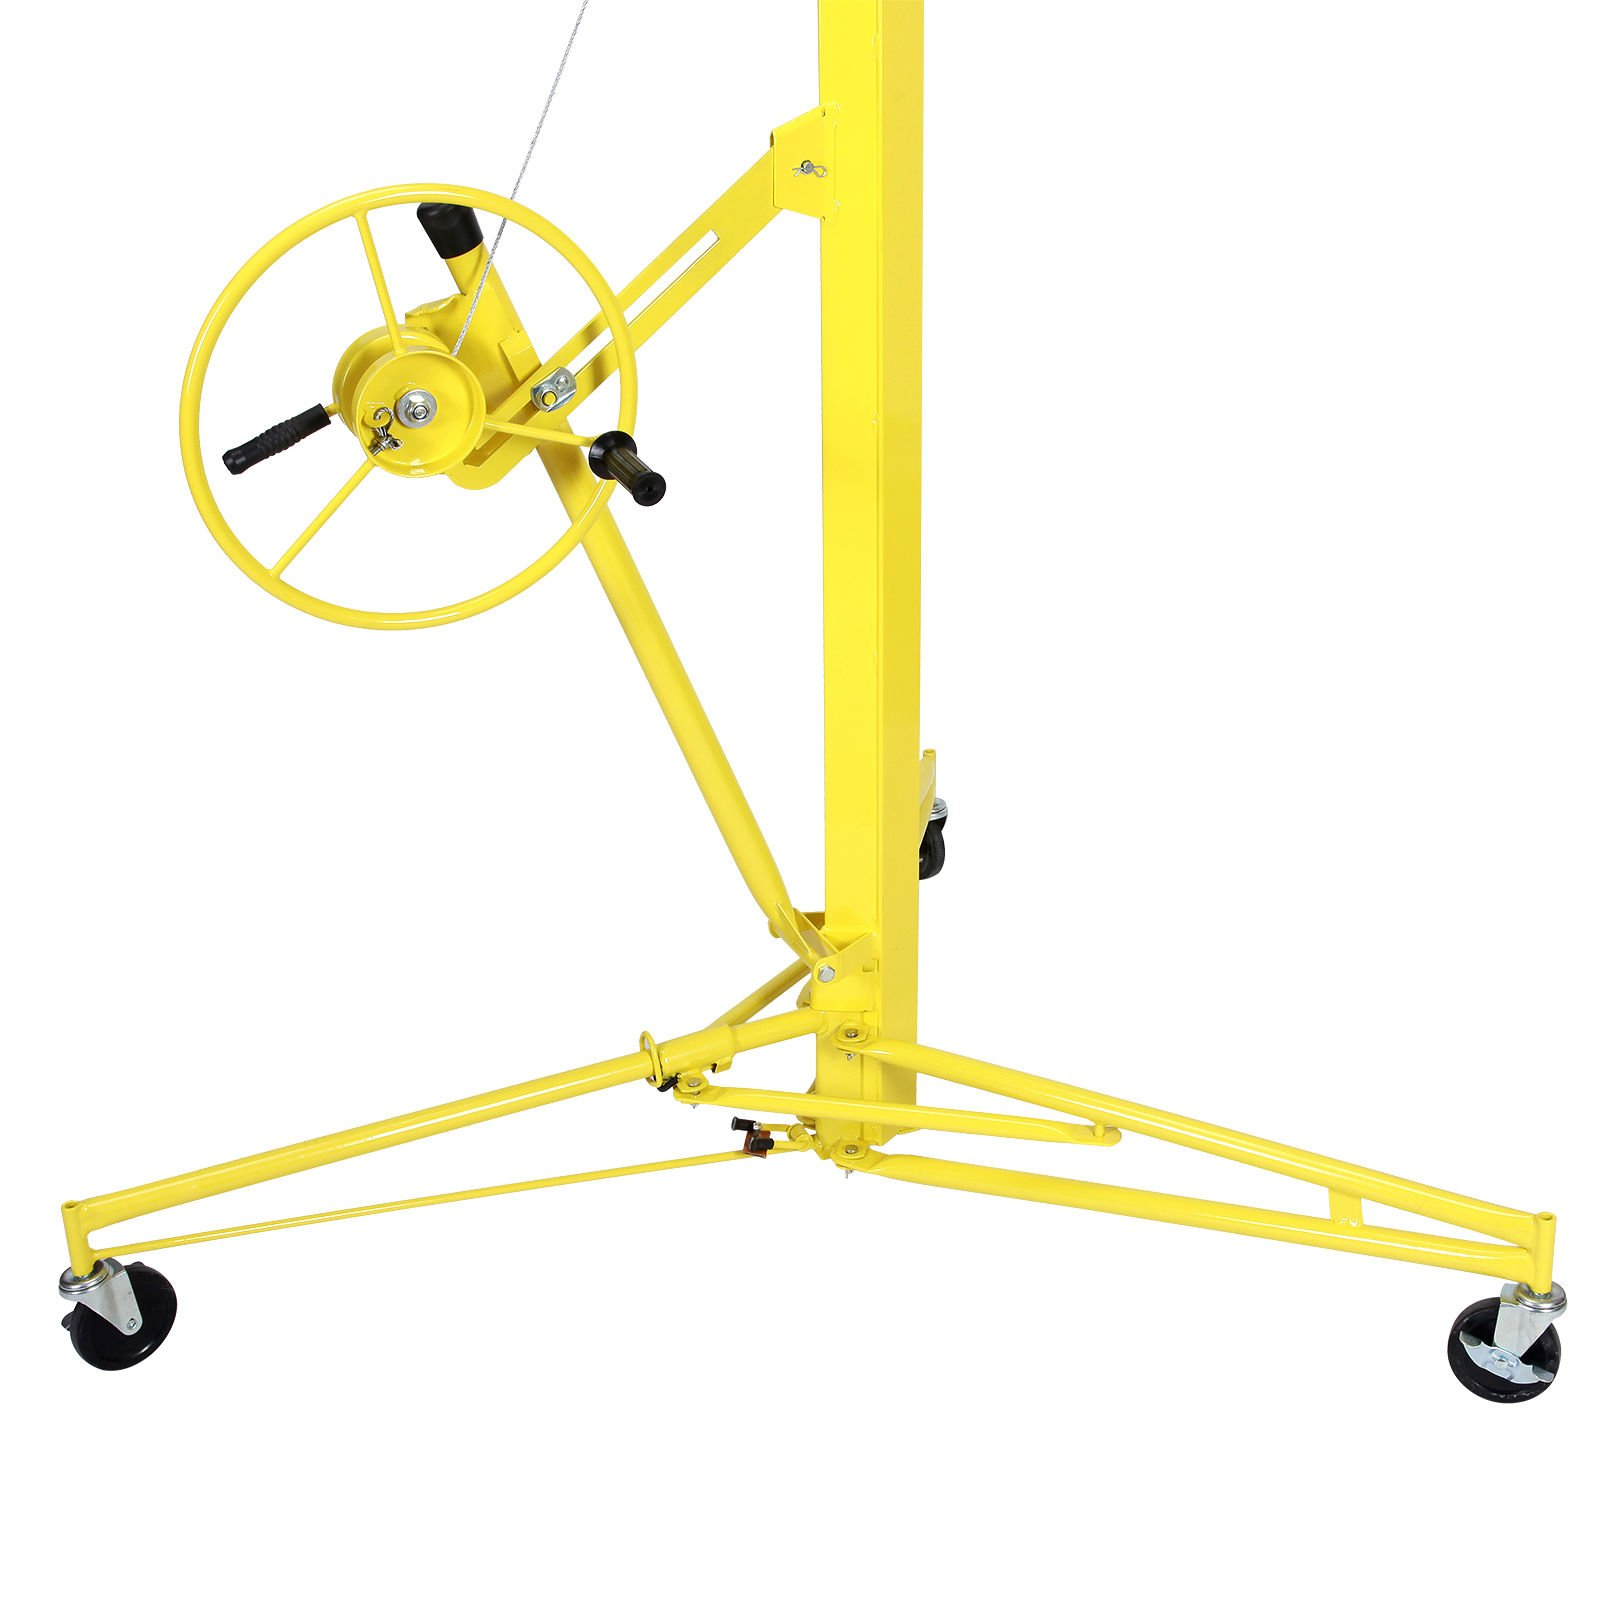 Idealchoiceproduct 16' Drywall Lift Rolling Panel Hoist Jack Lifter Construction Caster Wheels Lockable Tool Yellow by Idealchoiceproduct (Image #5)